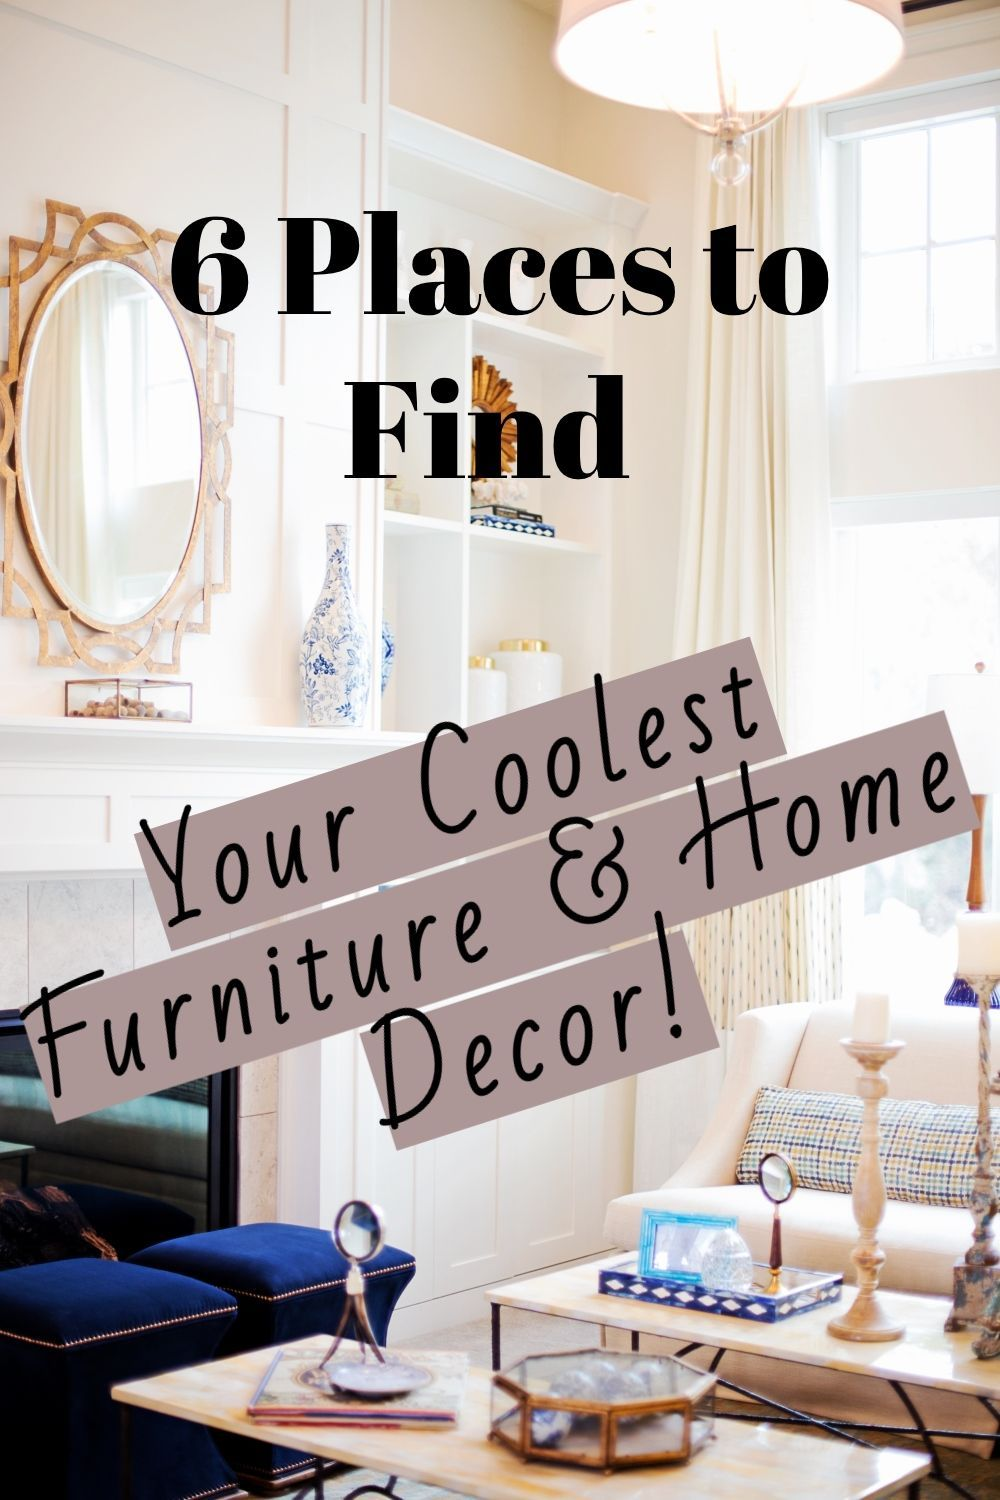 Where To Look For Your Most Unique Home Decor Homedecor